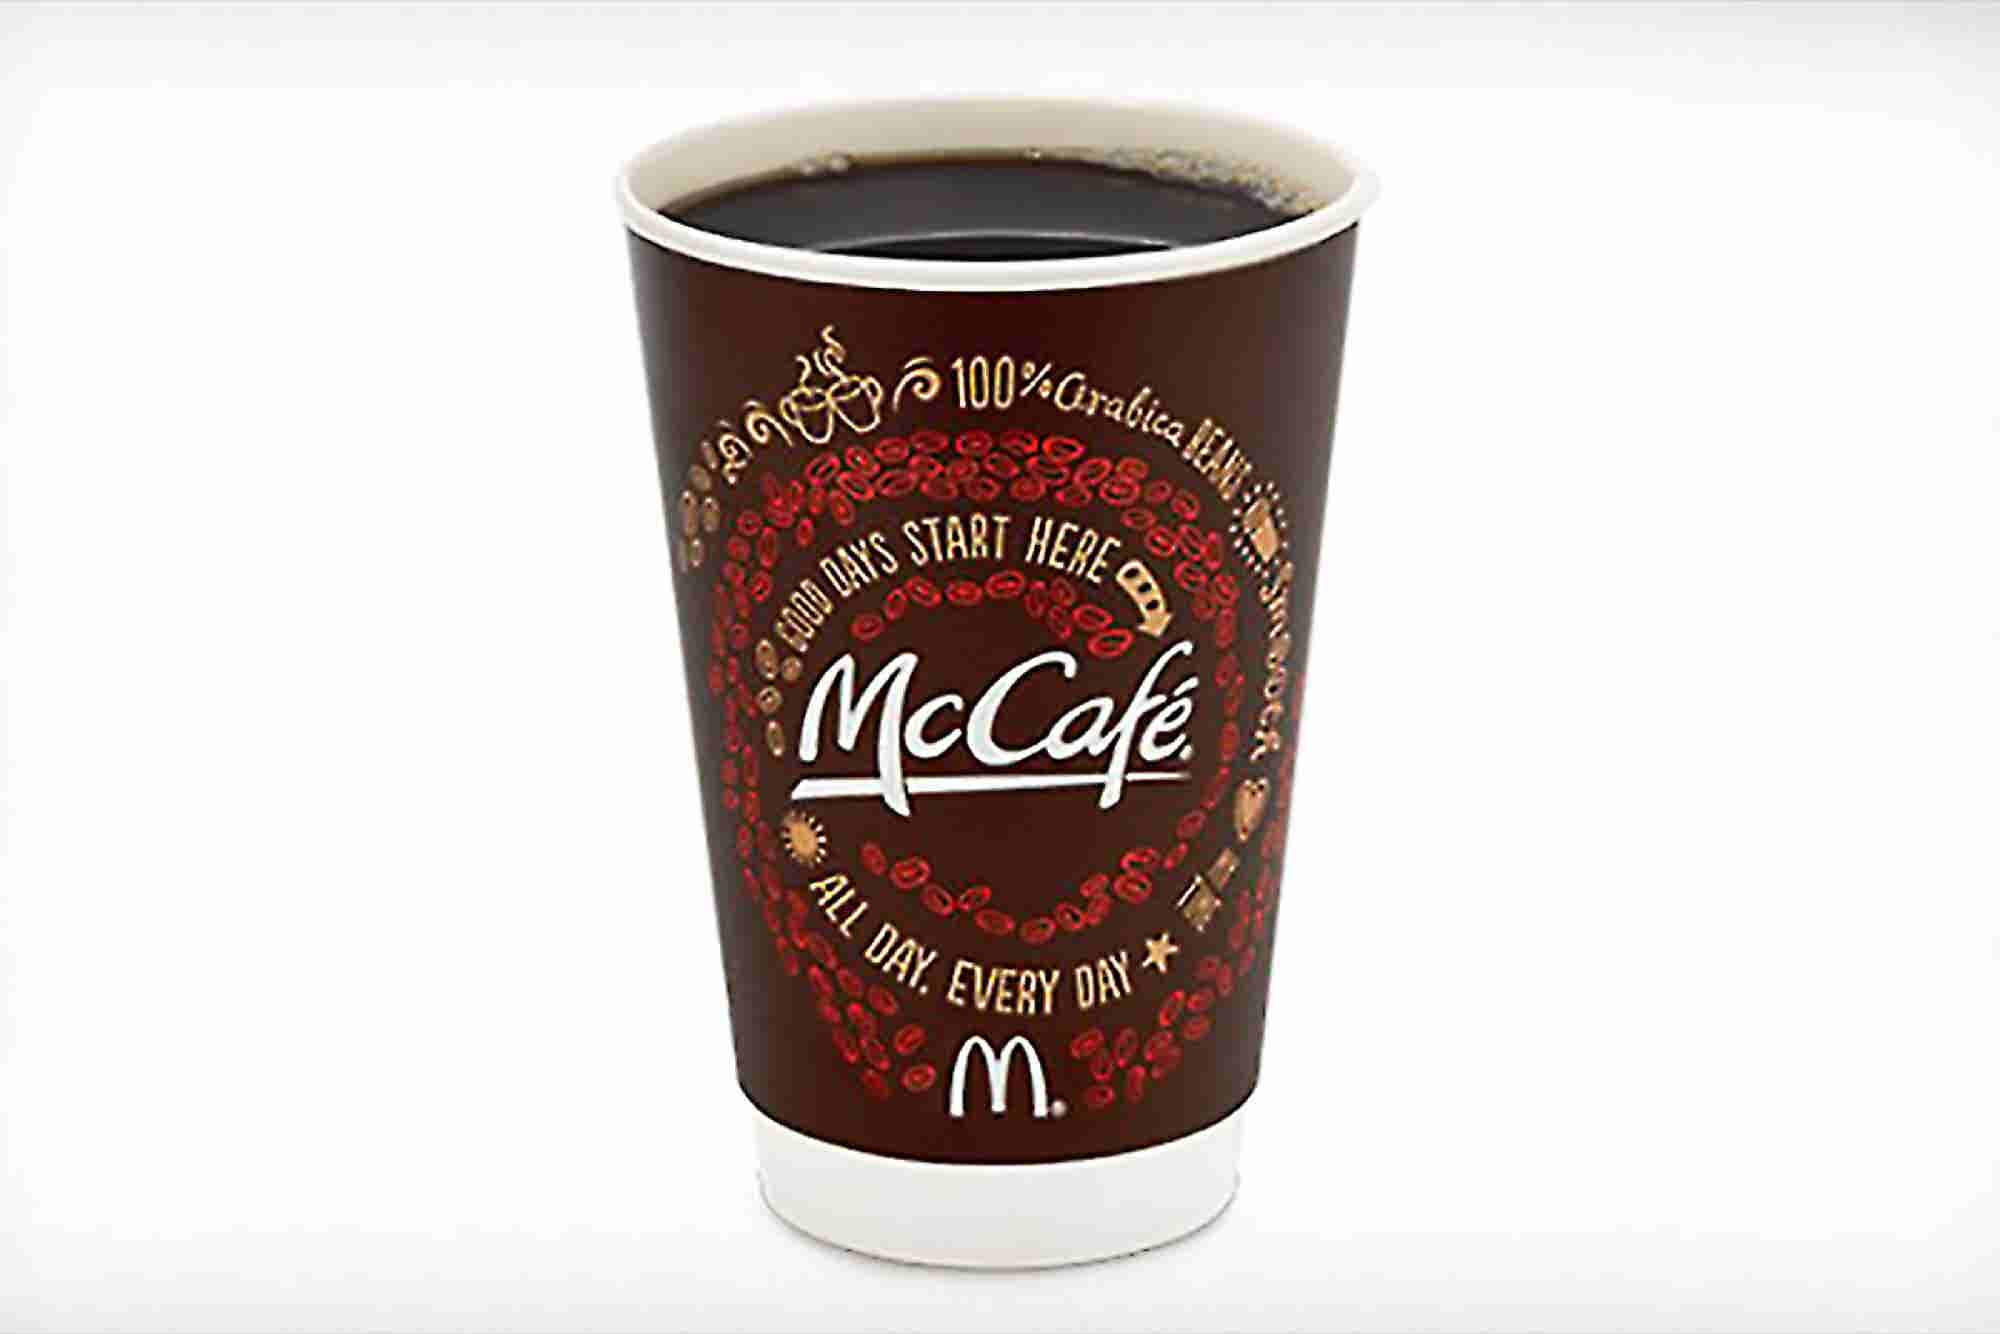 Looking to Steal Taco Bell's Thunder, McDonald's Offers Free Coffee